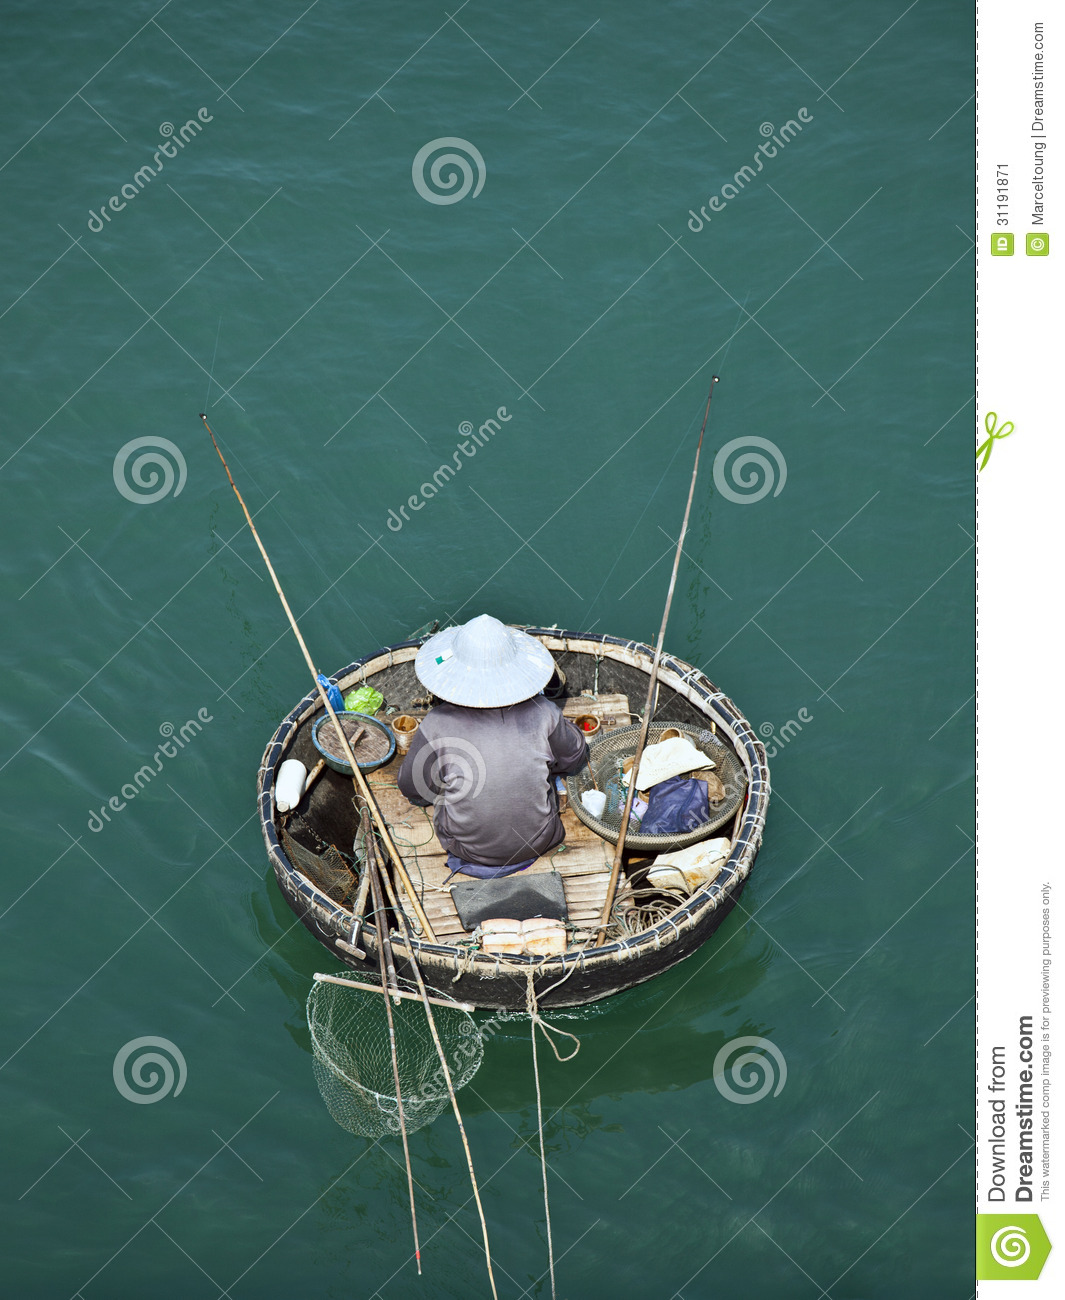 Birds Eye View Of Man In Traditional Round Vietnamese Fishing Boat